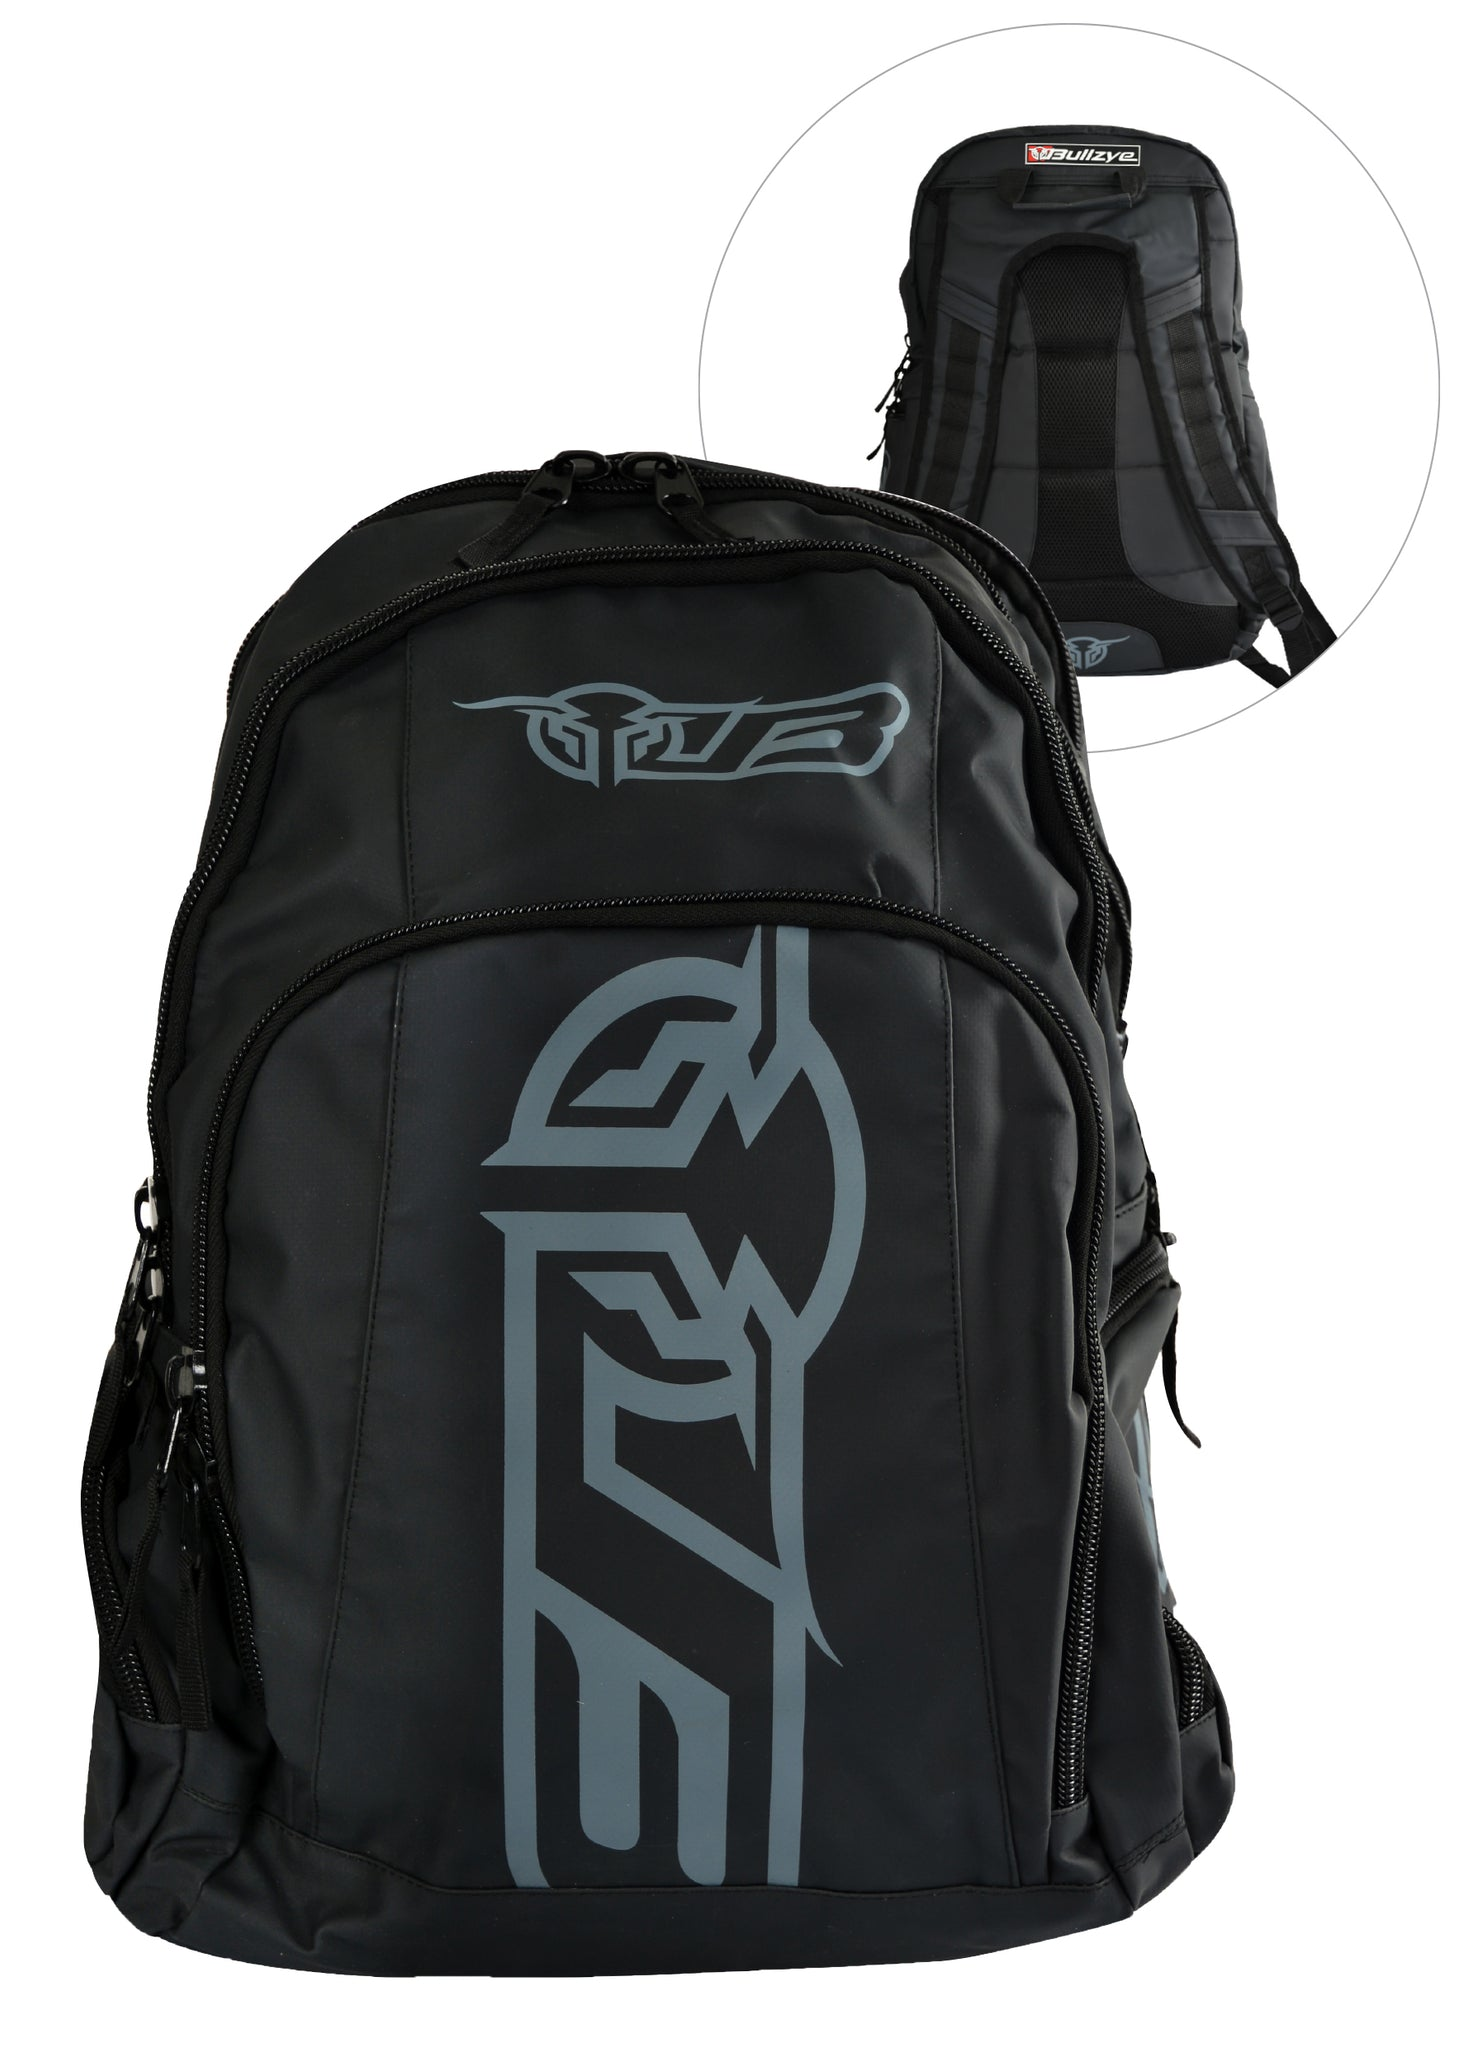 Bullzye Dozer Backpack - Black